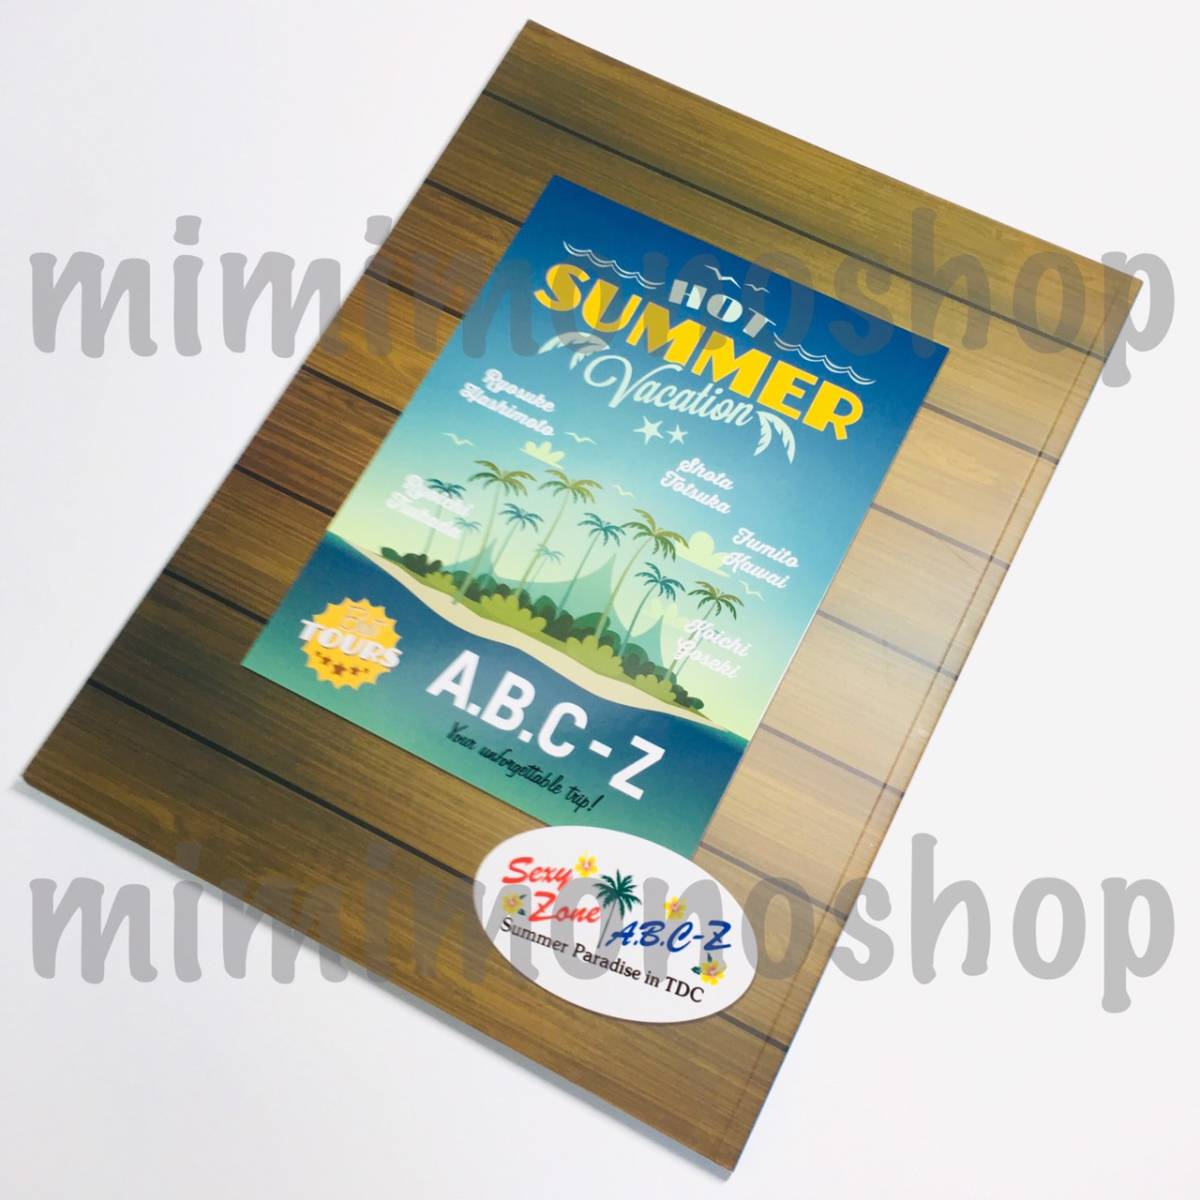 ★即決★Sexy Zone A.B.C-Z 【 パンフレット 】 公式 コンサート グッズ / SexyZone POOL Party / HOT SUMMER Vacation A.B.C-Z_画像2